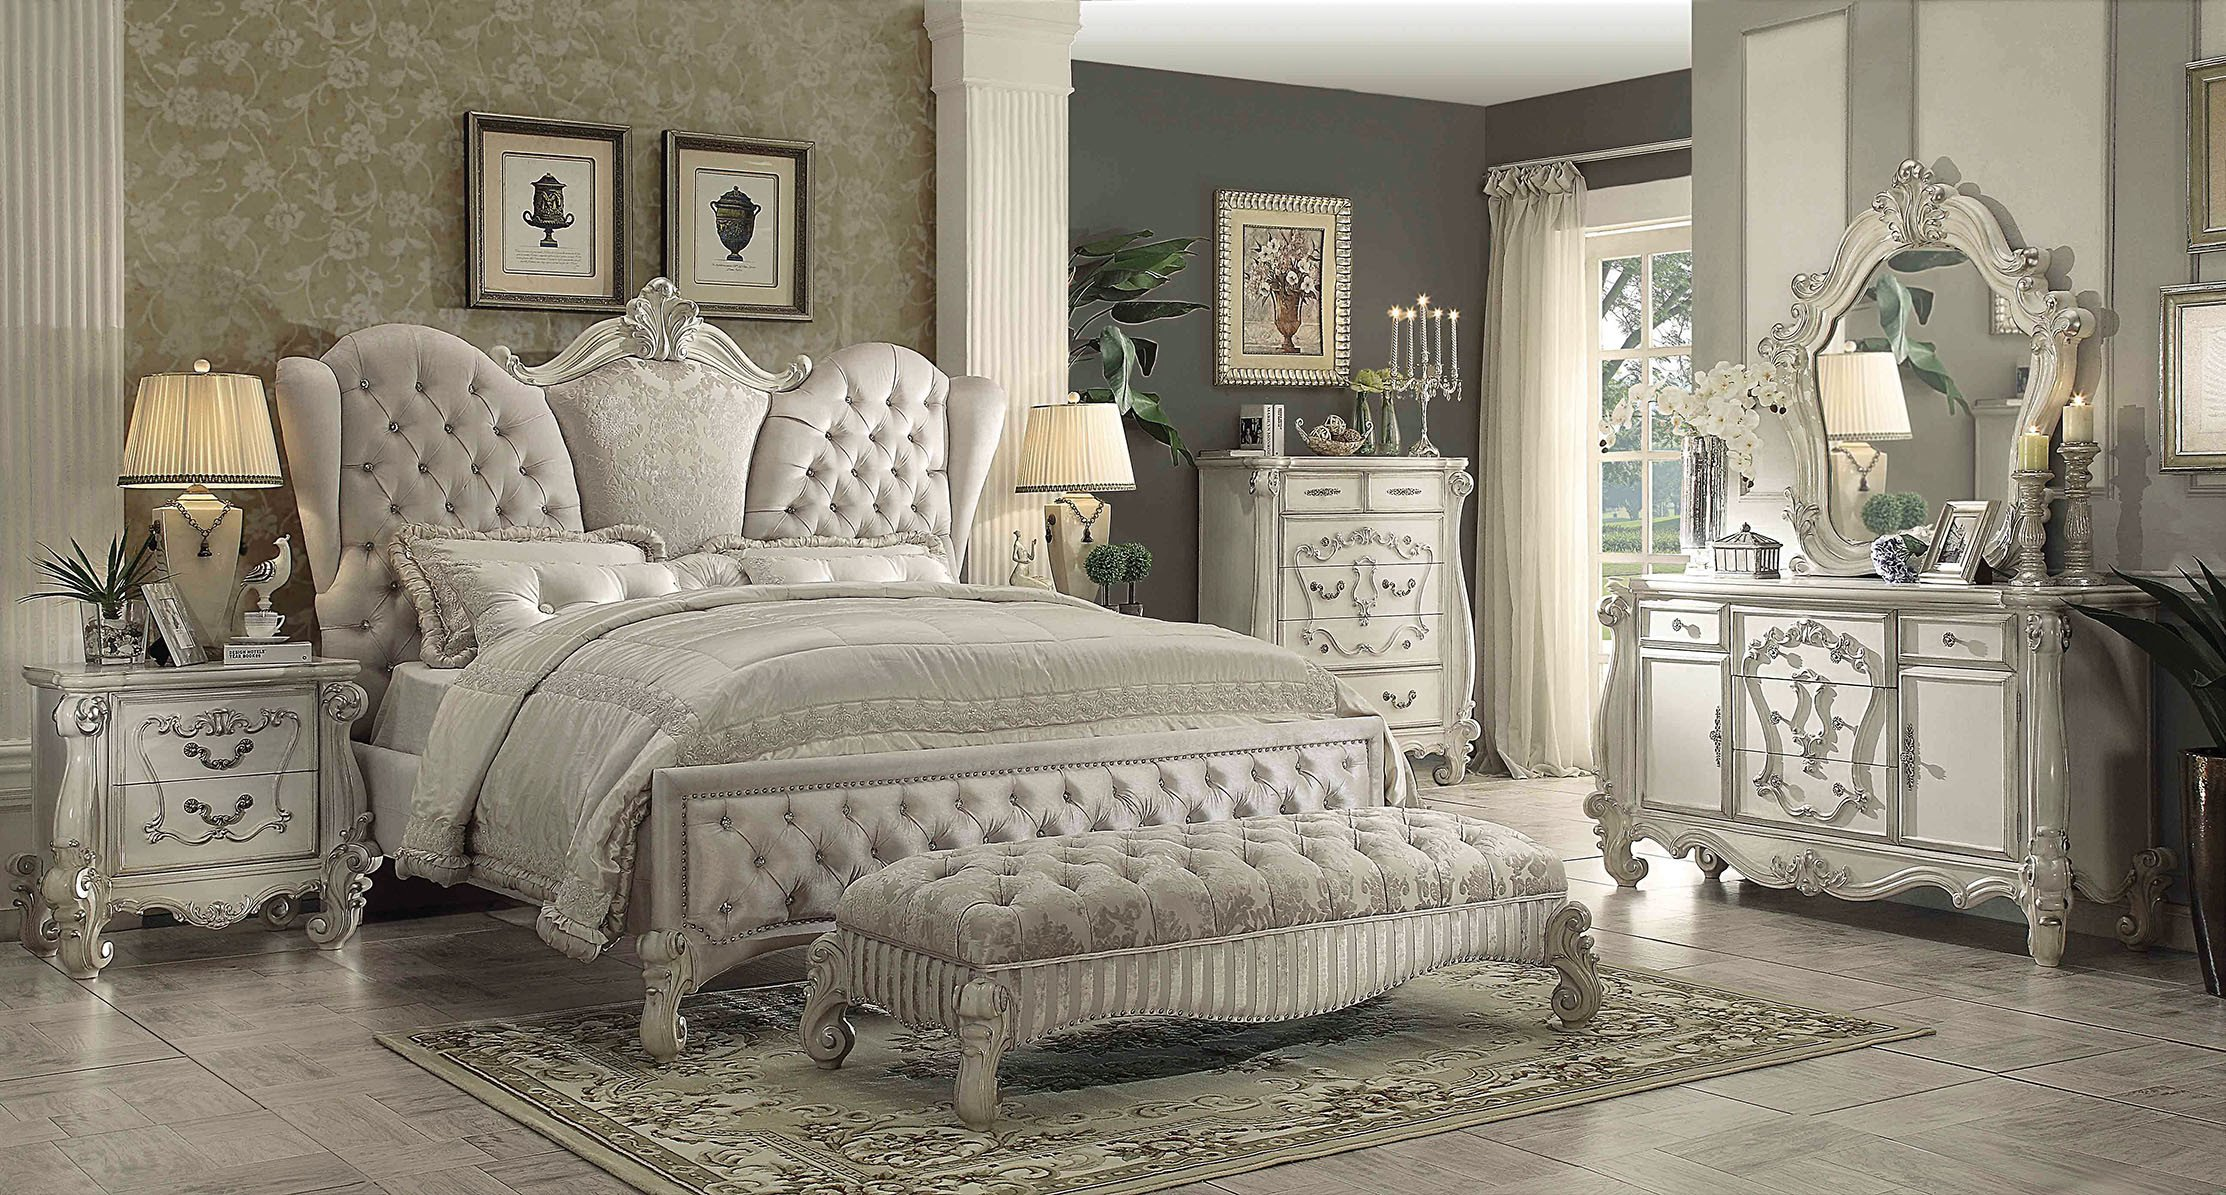 Acme Furniture Bedroom Set Lovely Galaxy Home Furniture